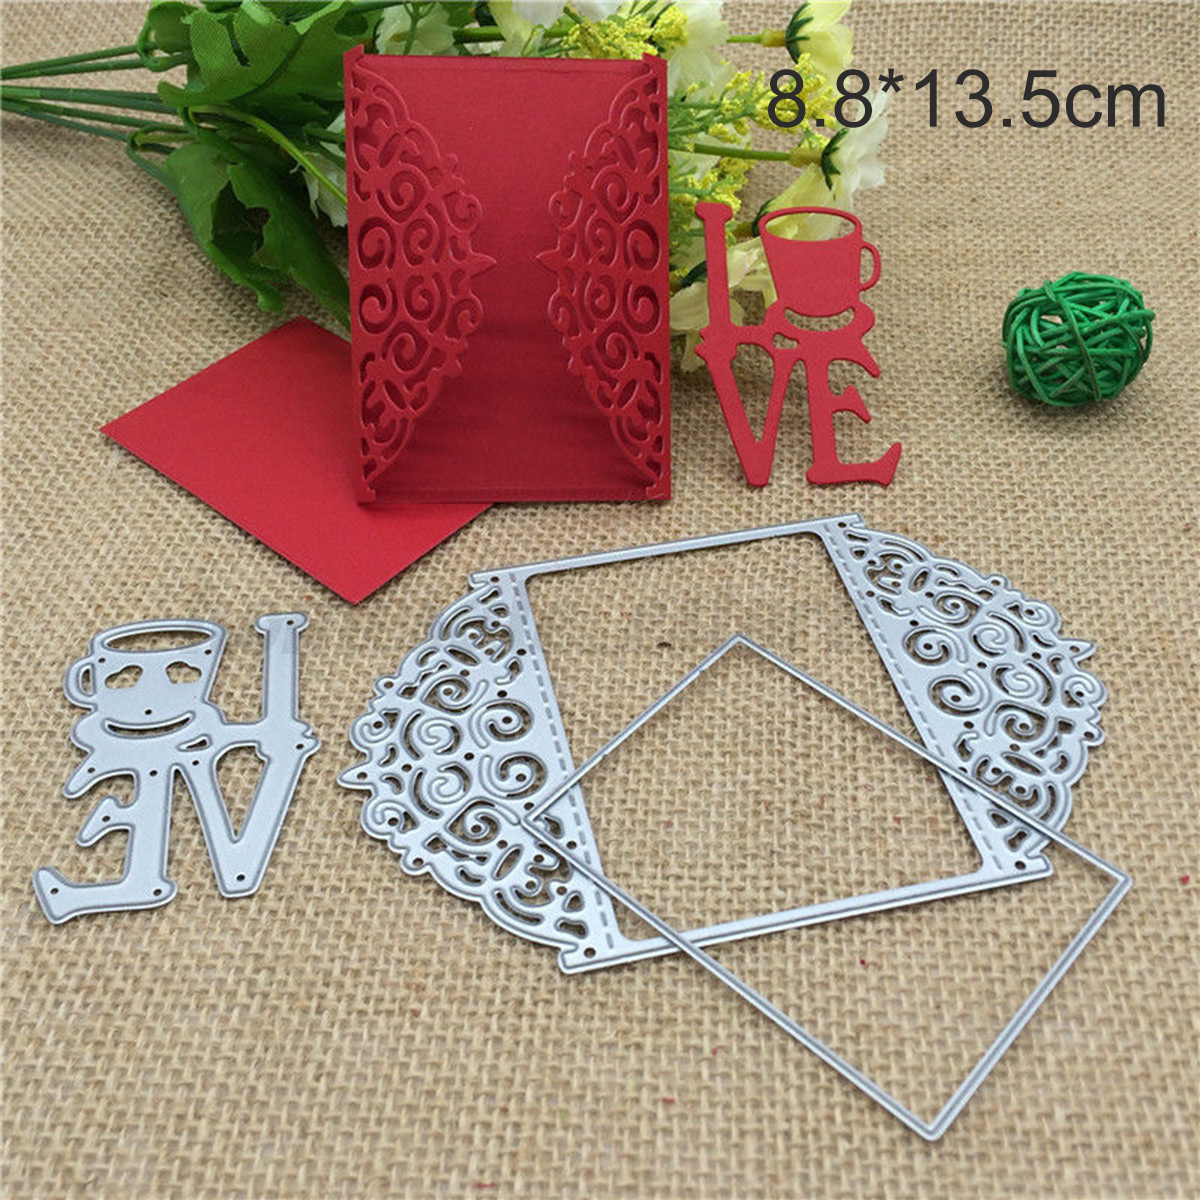 Metal-Cutting-Dies-Stencil-DIY-Scrapbooking-Embossing-Album-Paper-Card-Craft